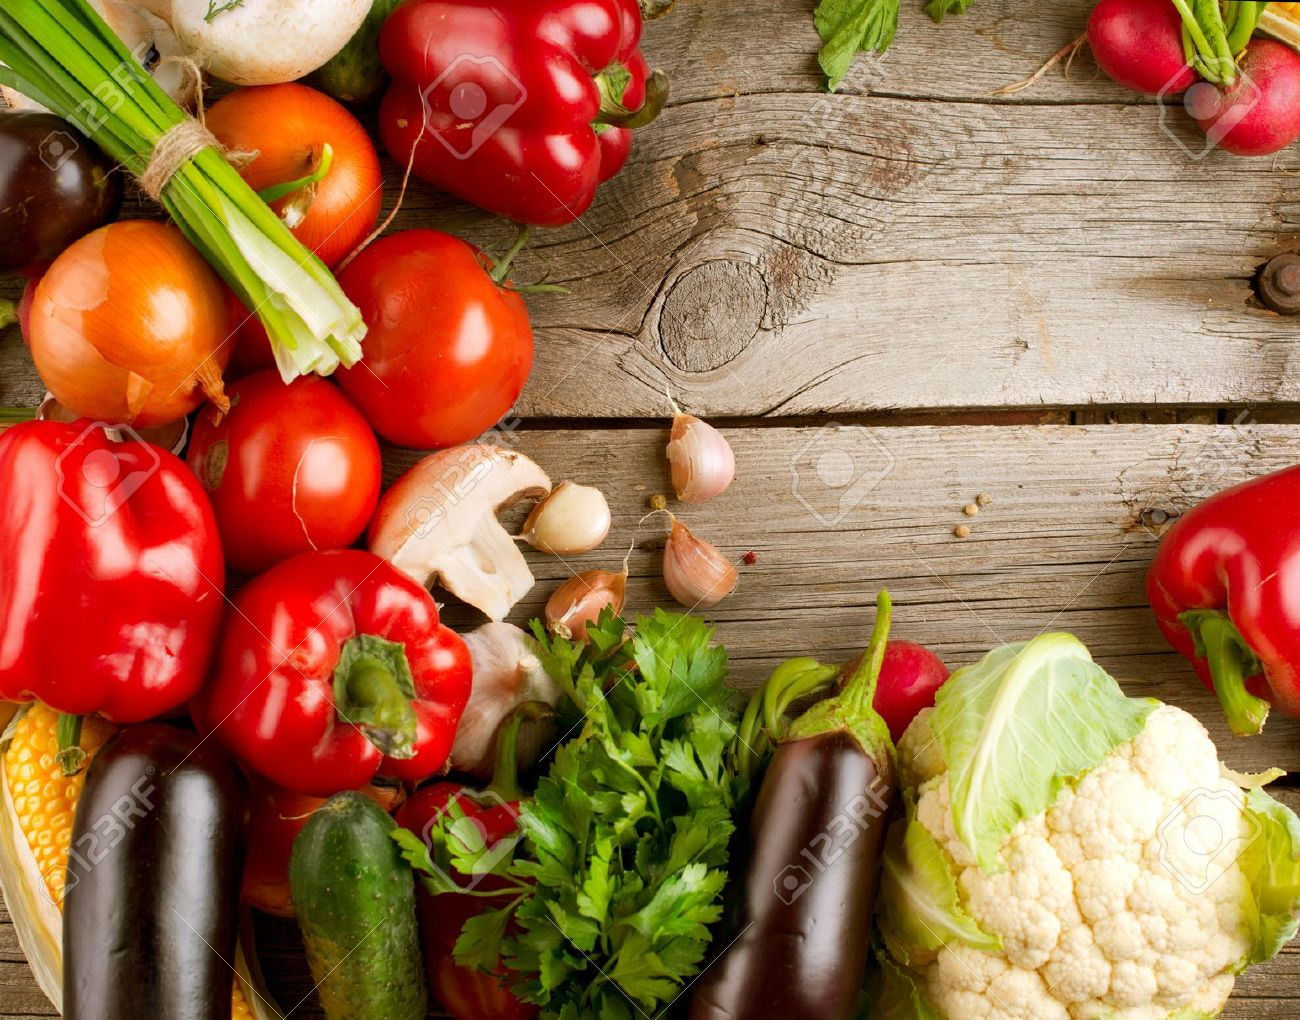 Healthy Organic Vegetables on the Wooden Background Stock Photo - 15622397